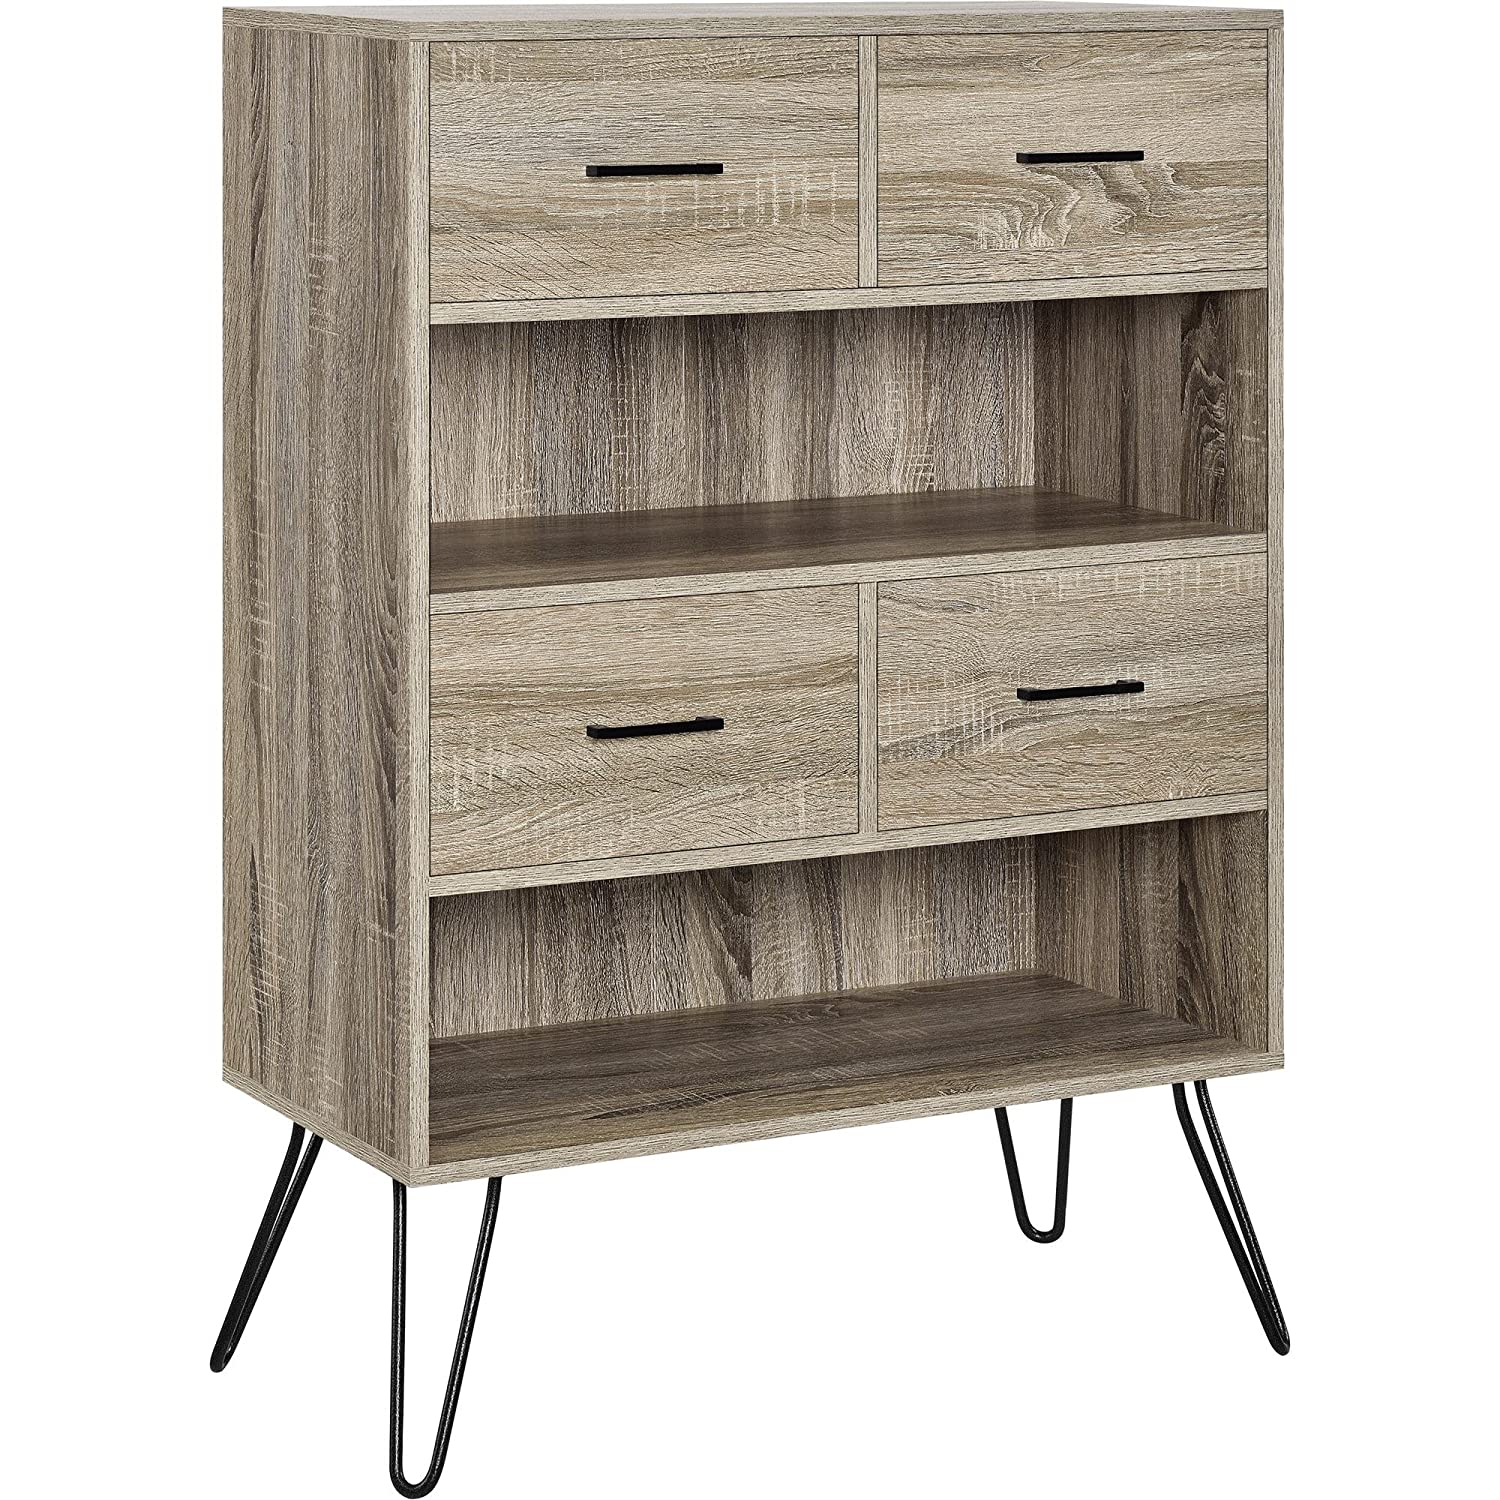 Amazon Ameriwood Home Landon Bookcase With Bins Weathered Oak Kitchen Dining